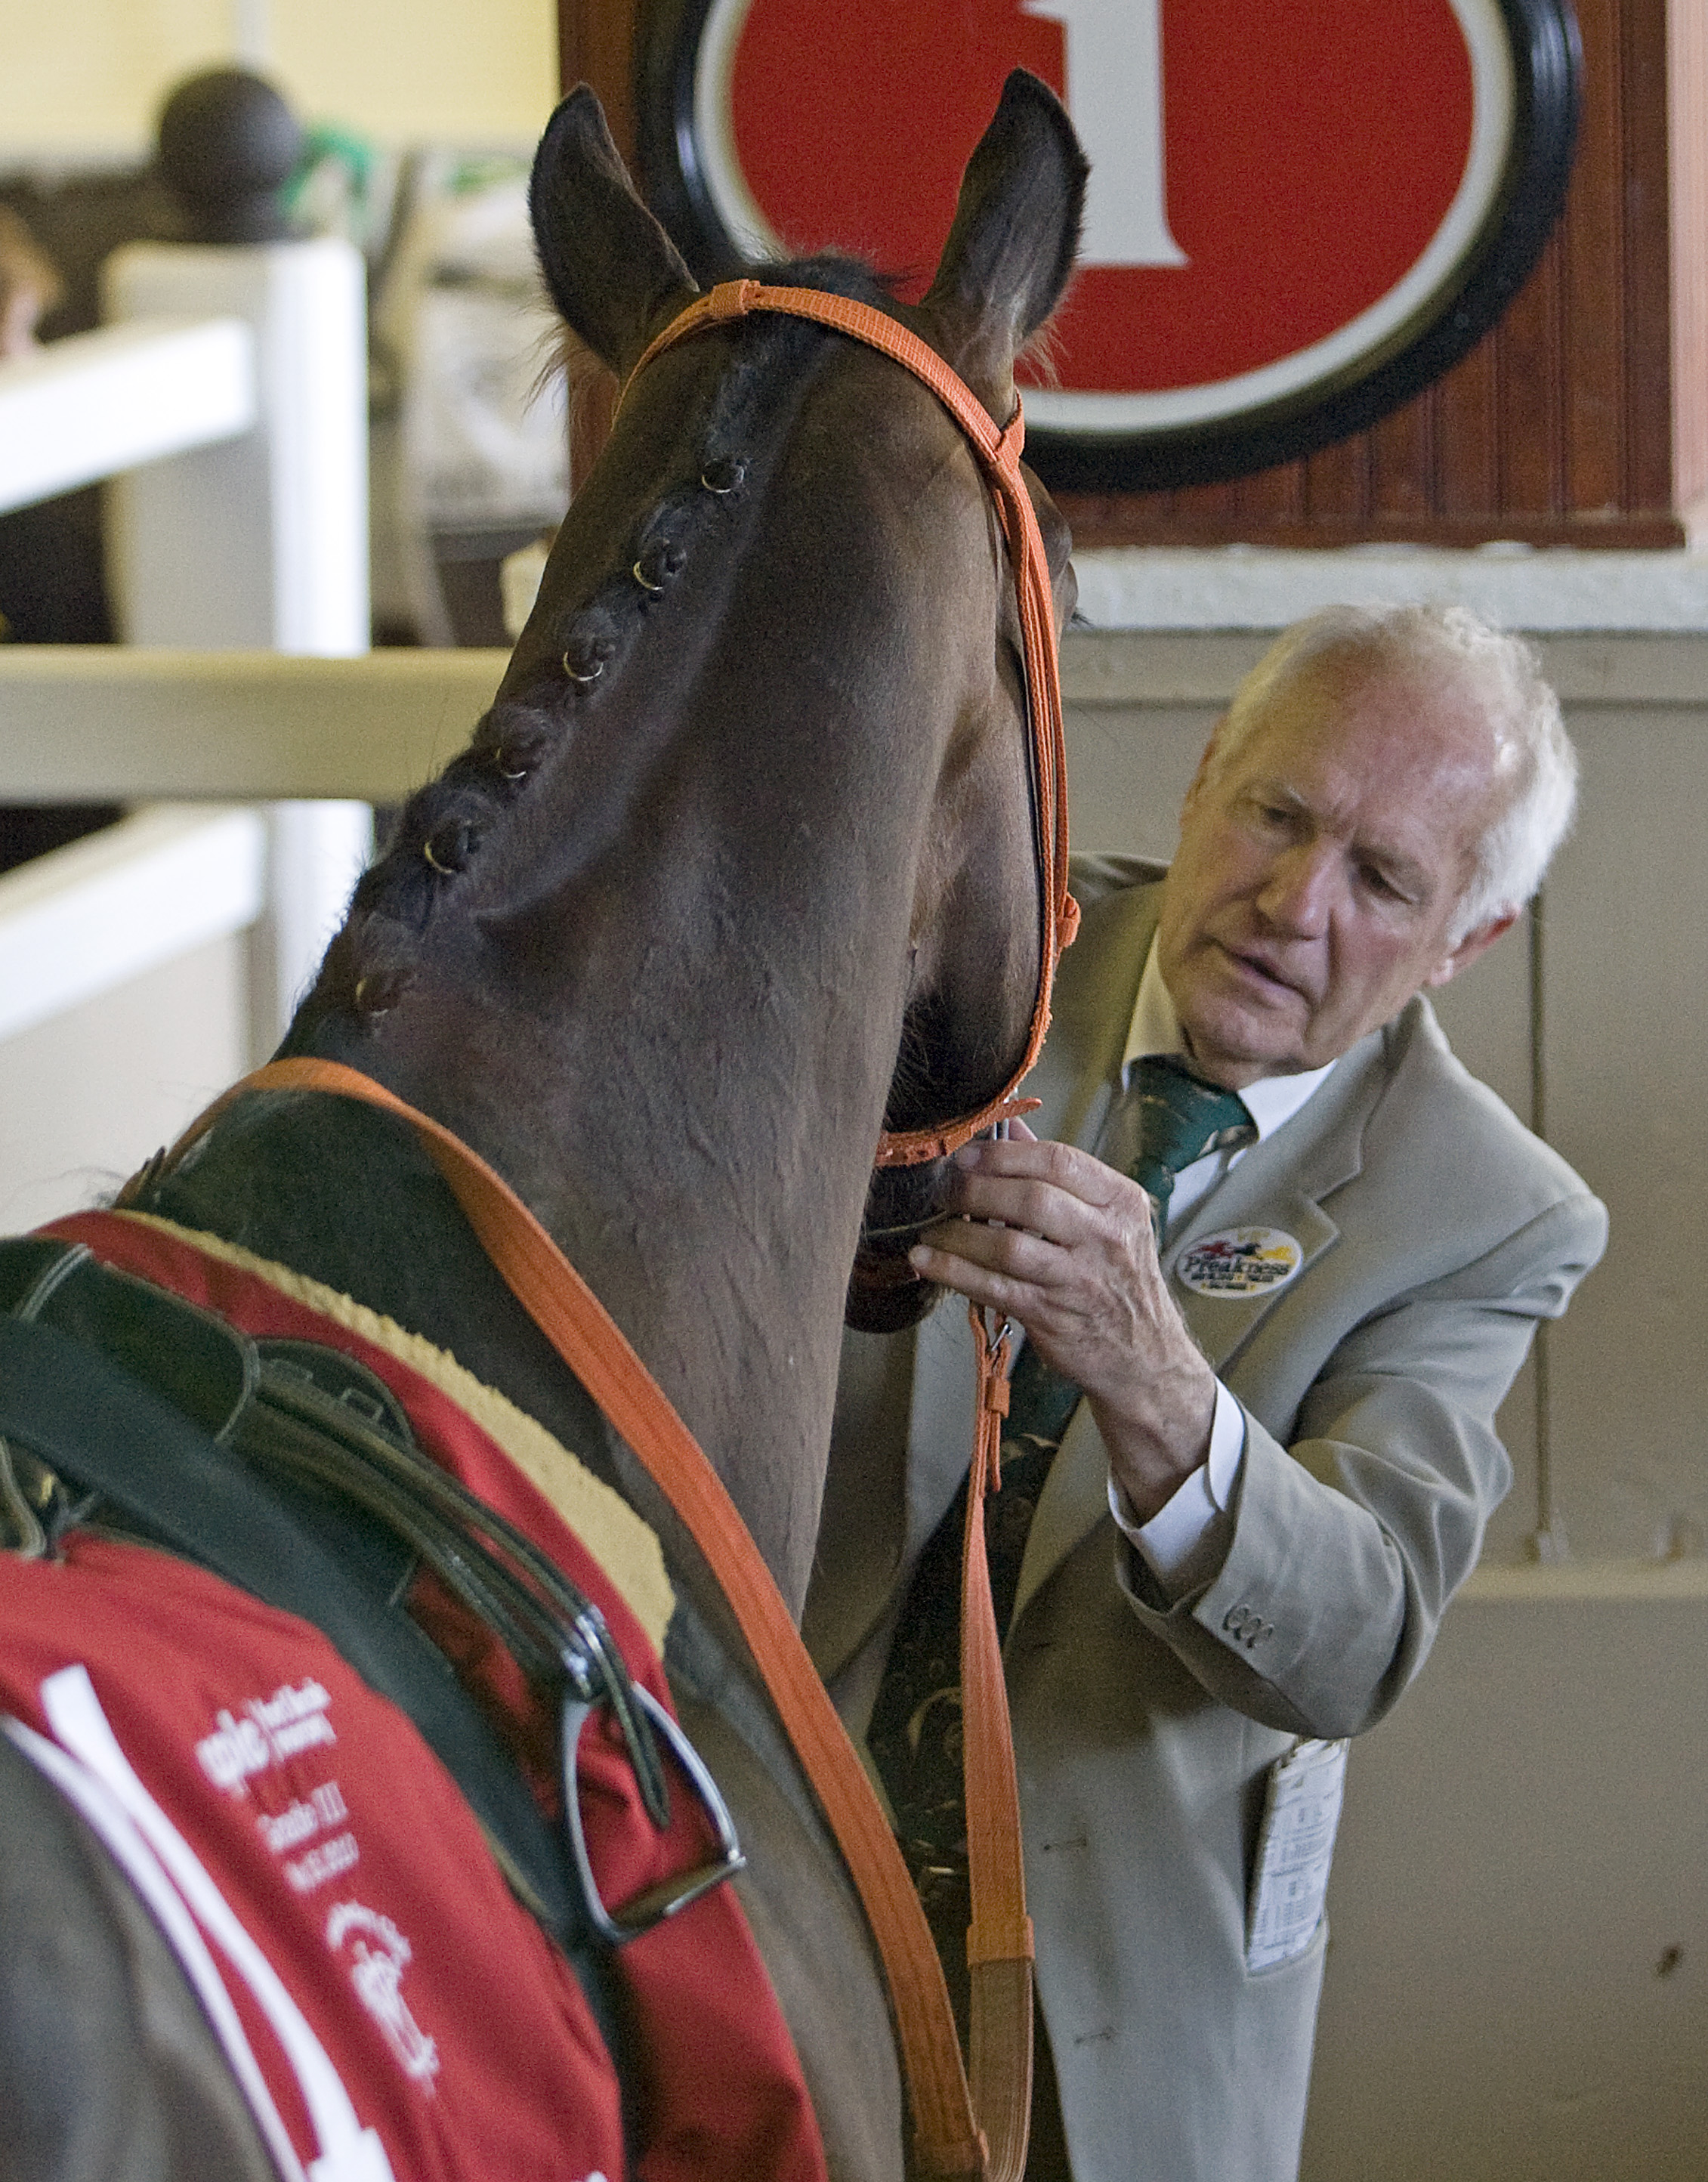 King Leatherbury saddling up Kens Cape for the Chick Lang Stakes at Pimlico, May 2010 (Barbara D. Livingston)